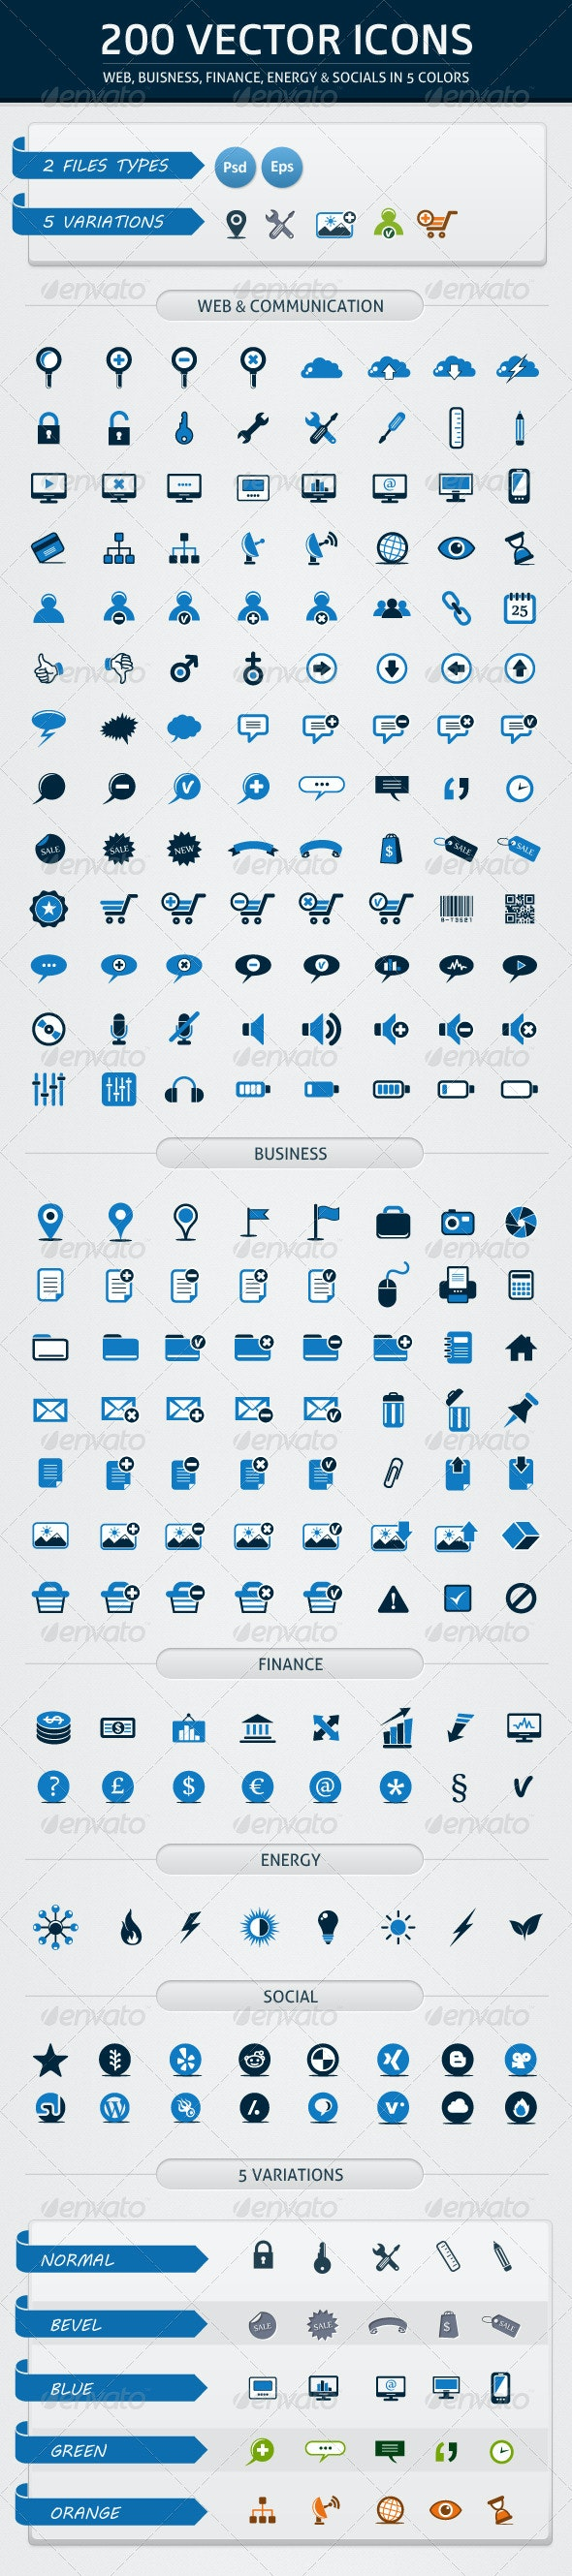 200 Vector Icons in 5 Colors - Web Icons